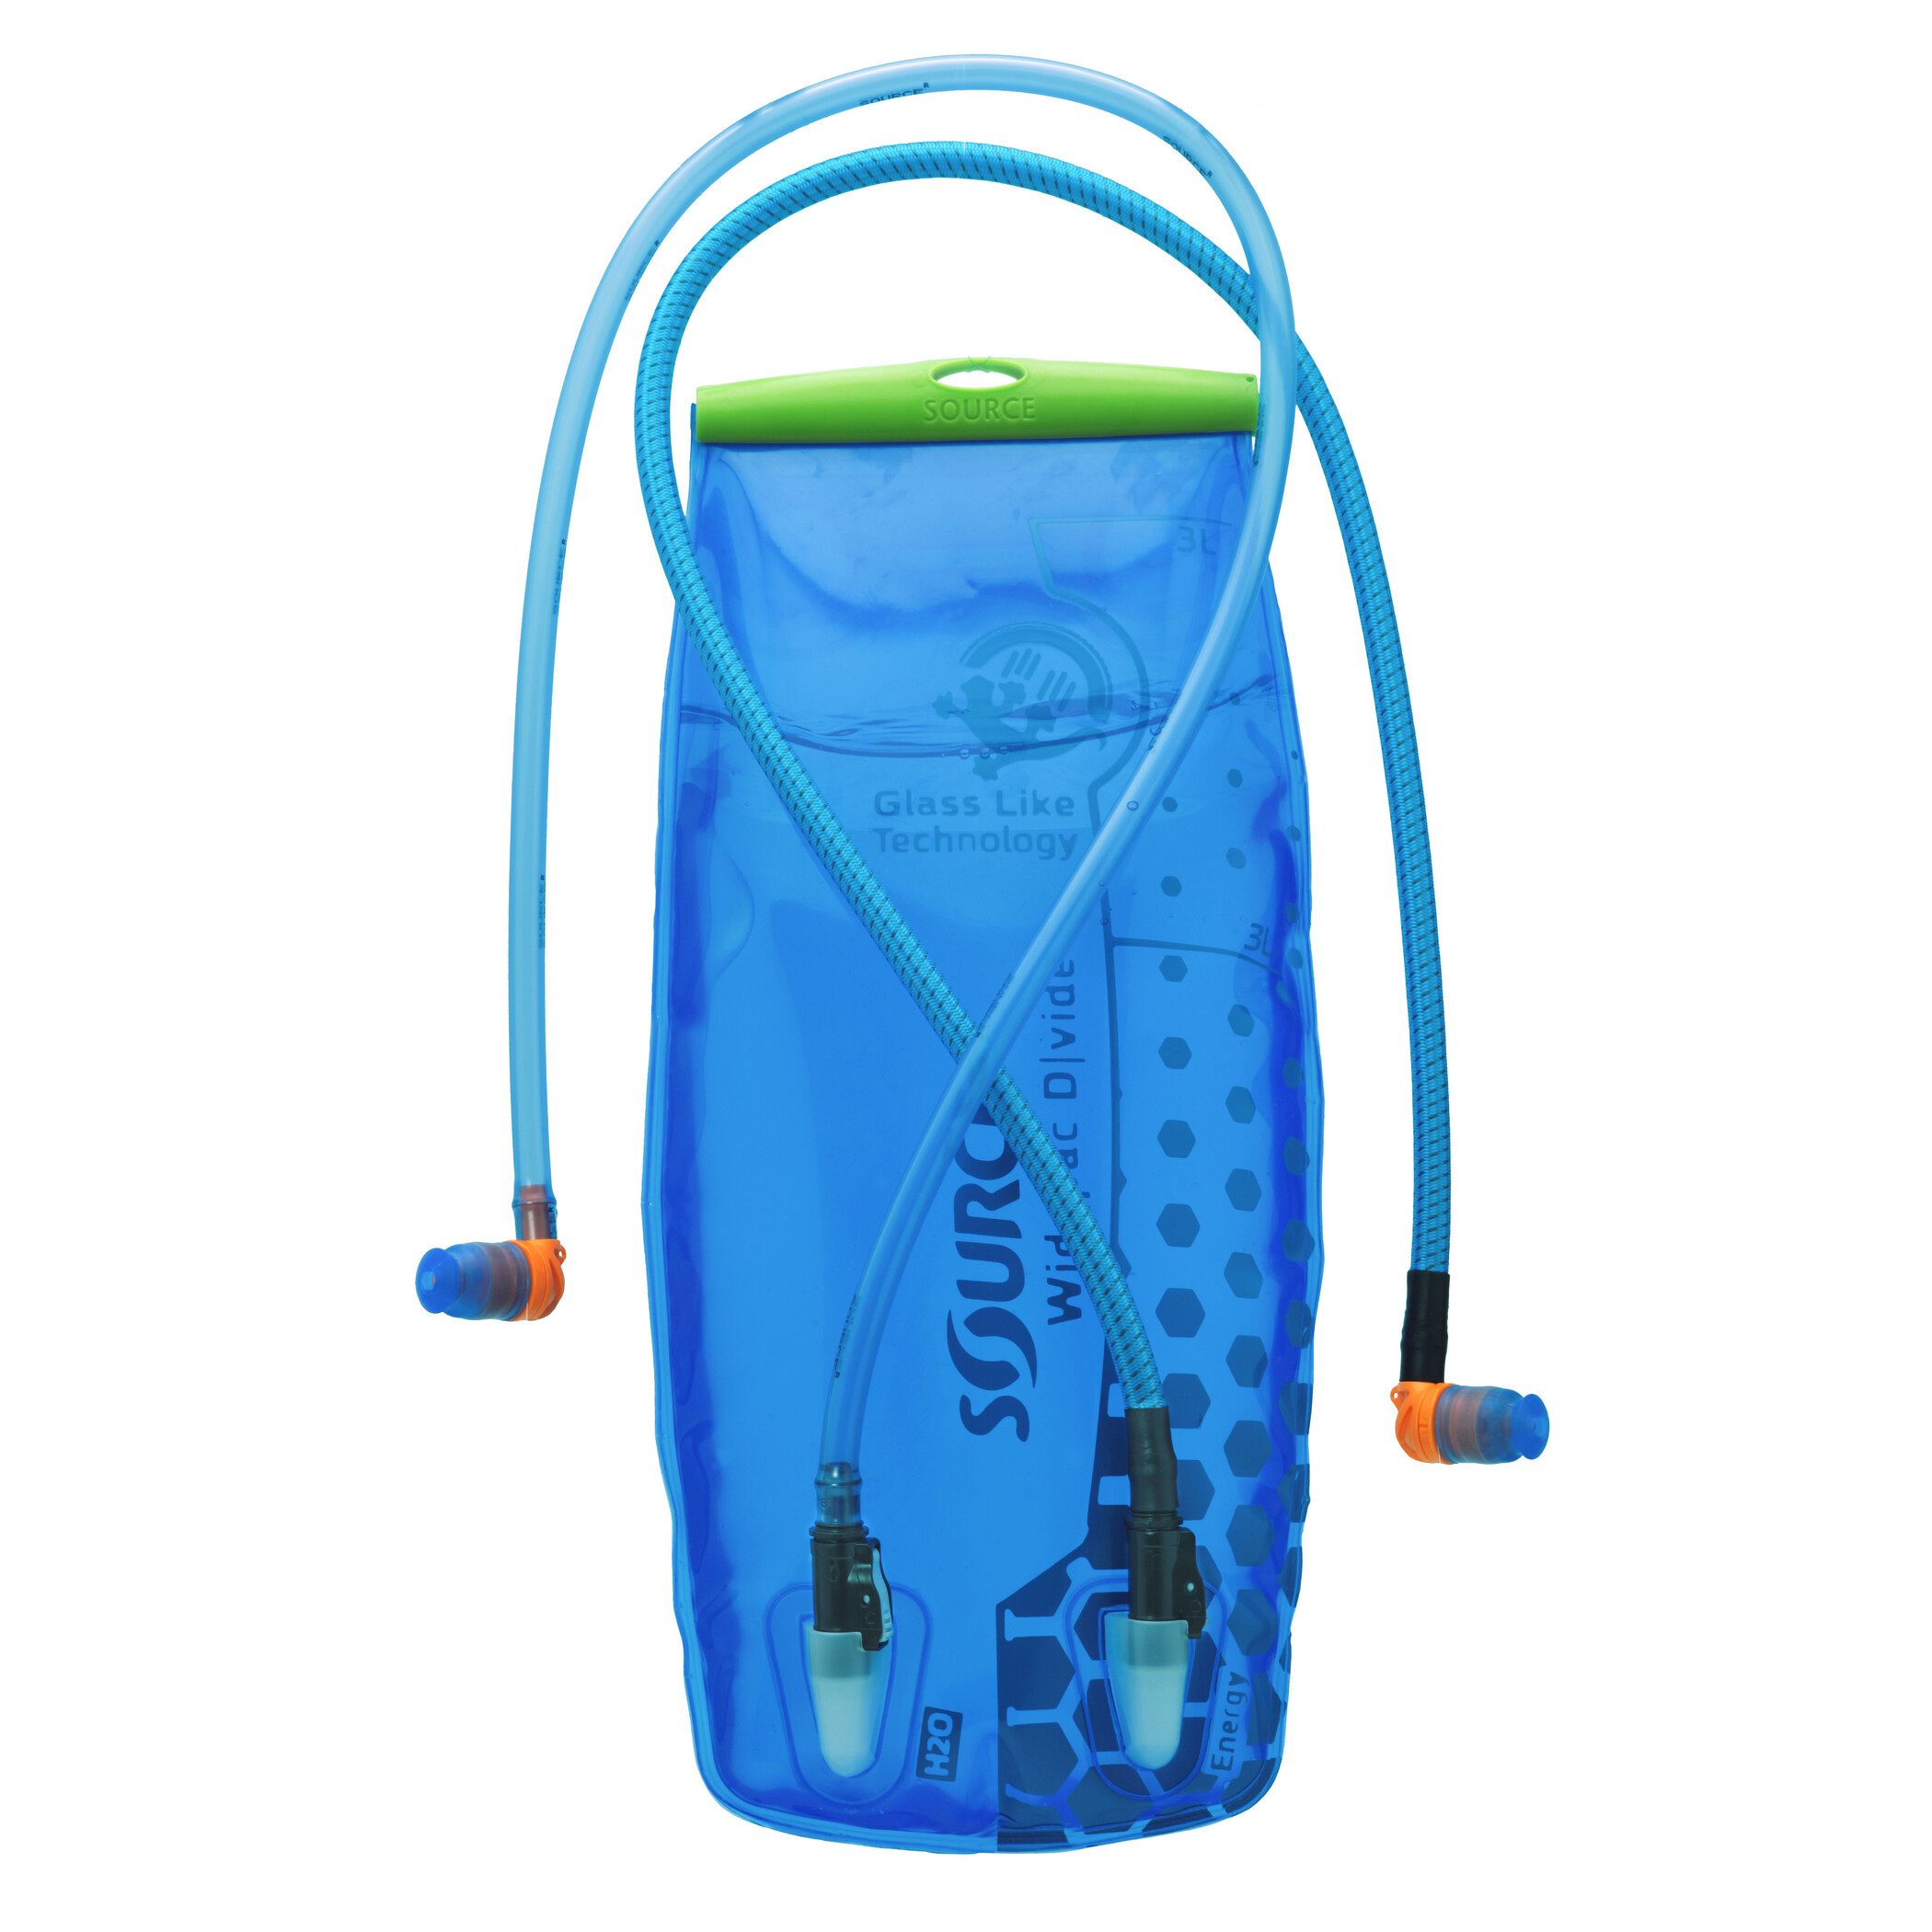 SOURCE Divide Widepac Hydration Bladder 3 liters, transparent-blue (2019) | item_misc